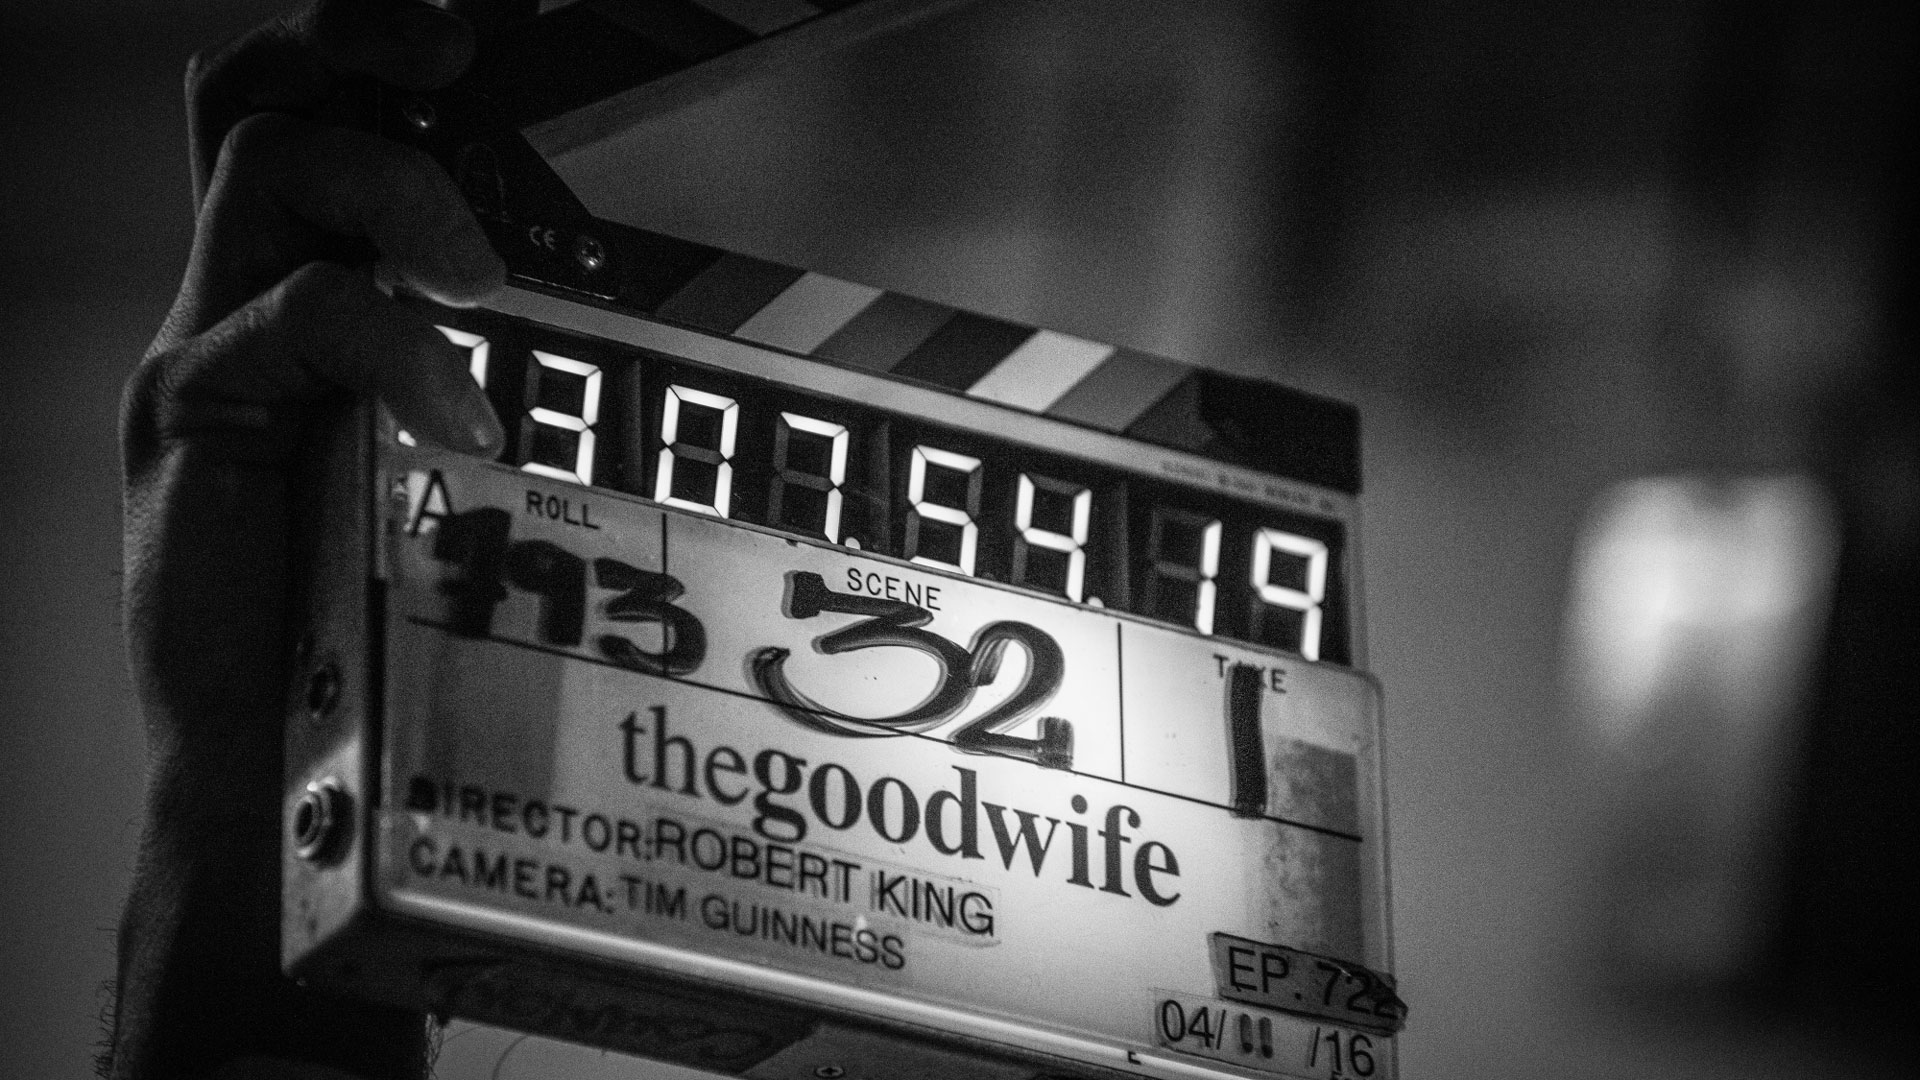 Goodbye to The Good Wife